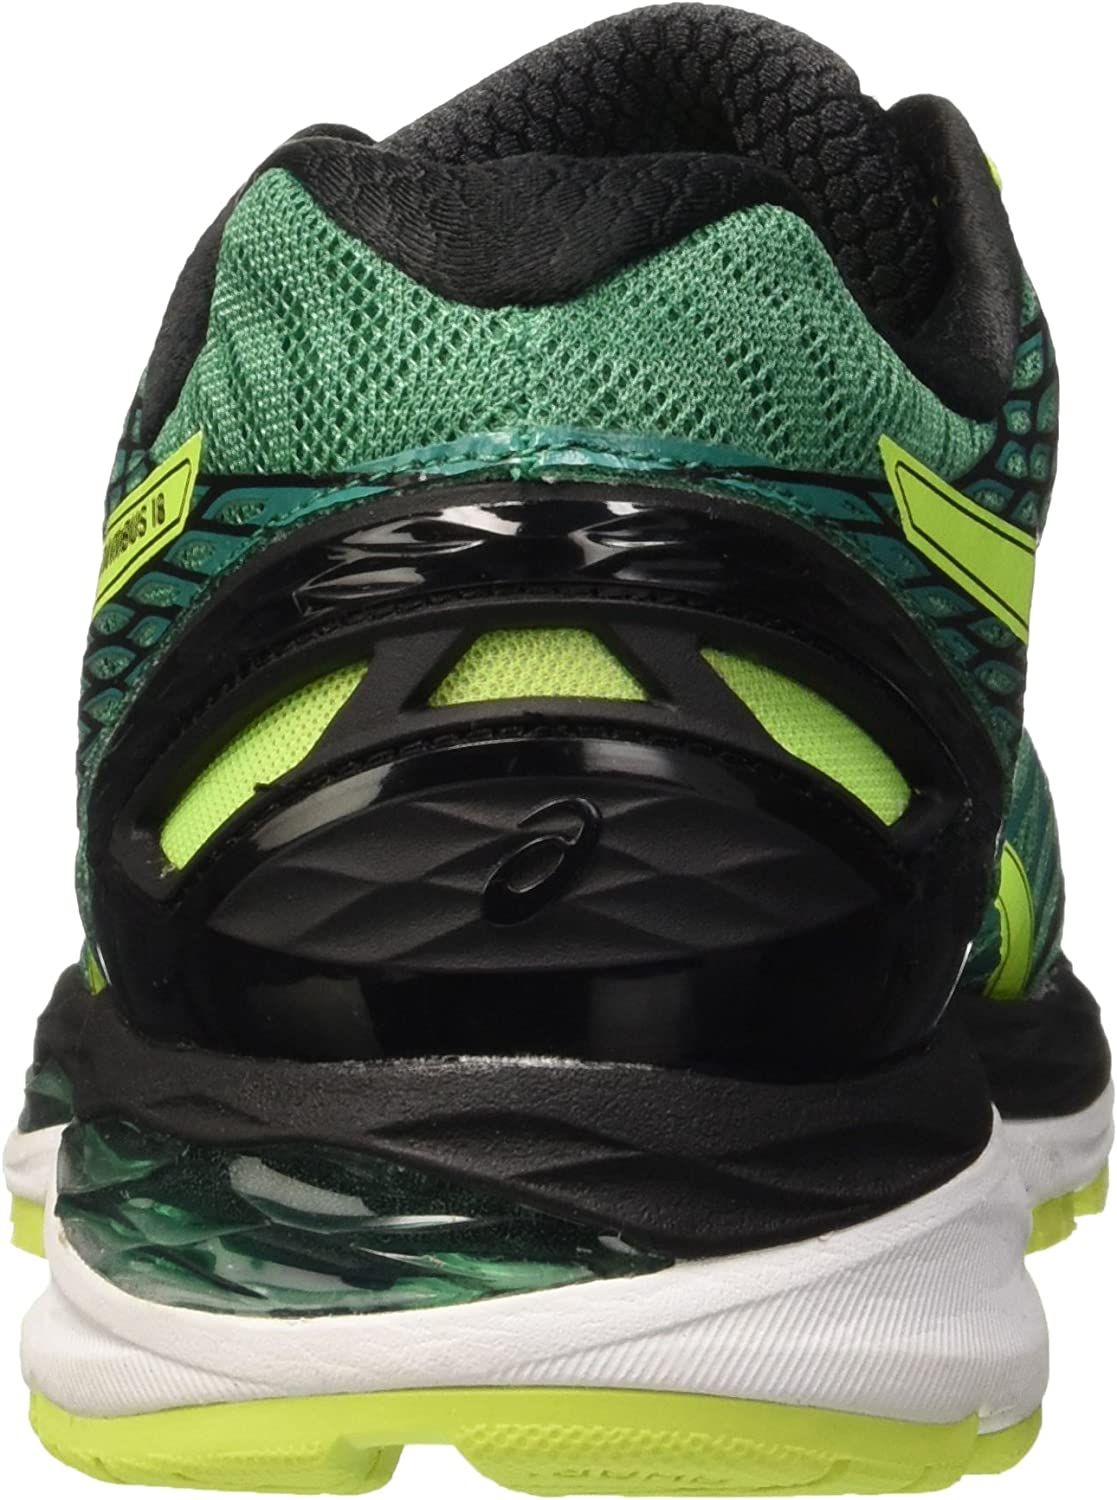 Asics Gel Nimbus 18 - Zapatillas de Running, Unisex, Verde (Pine/Flash Yellow/Black), 39: Amazon.es: Zapatos y complementos